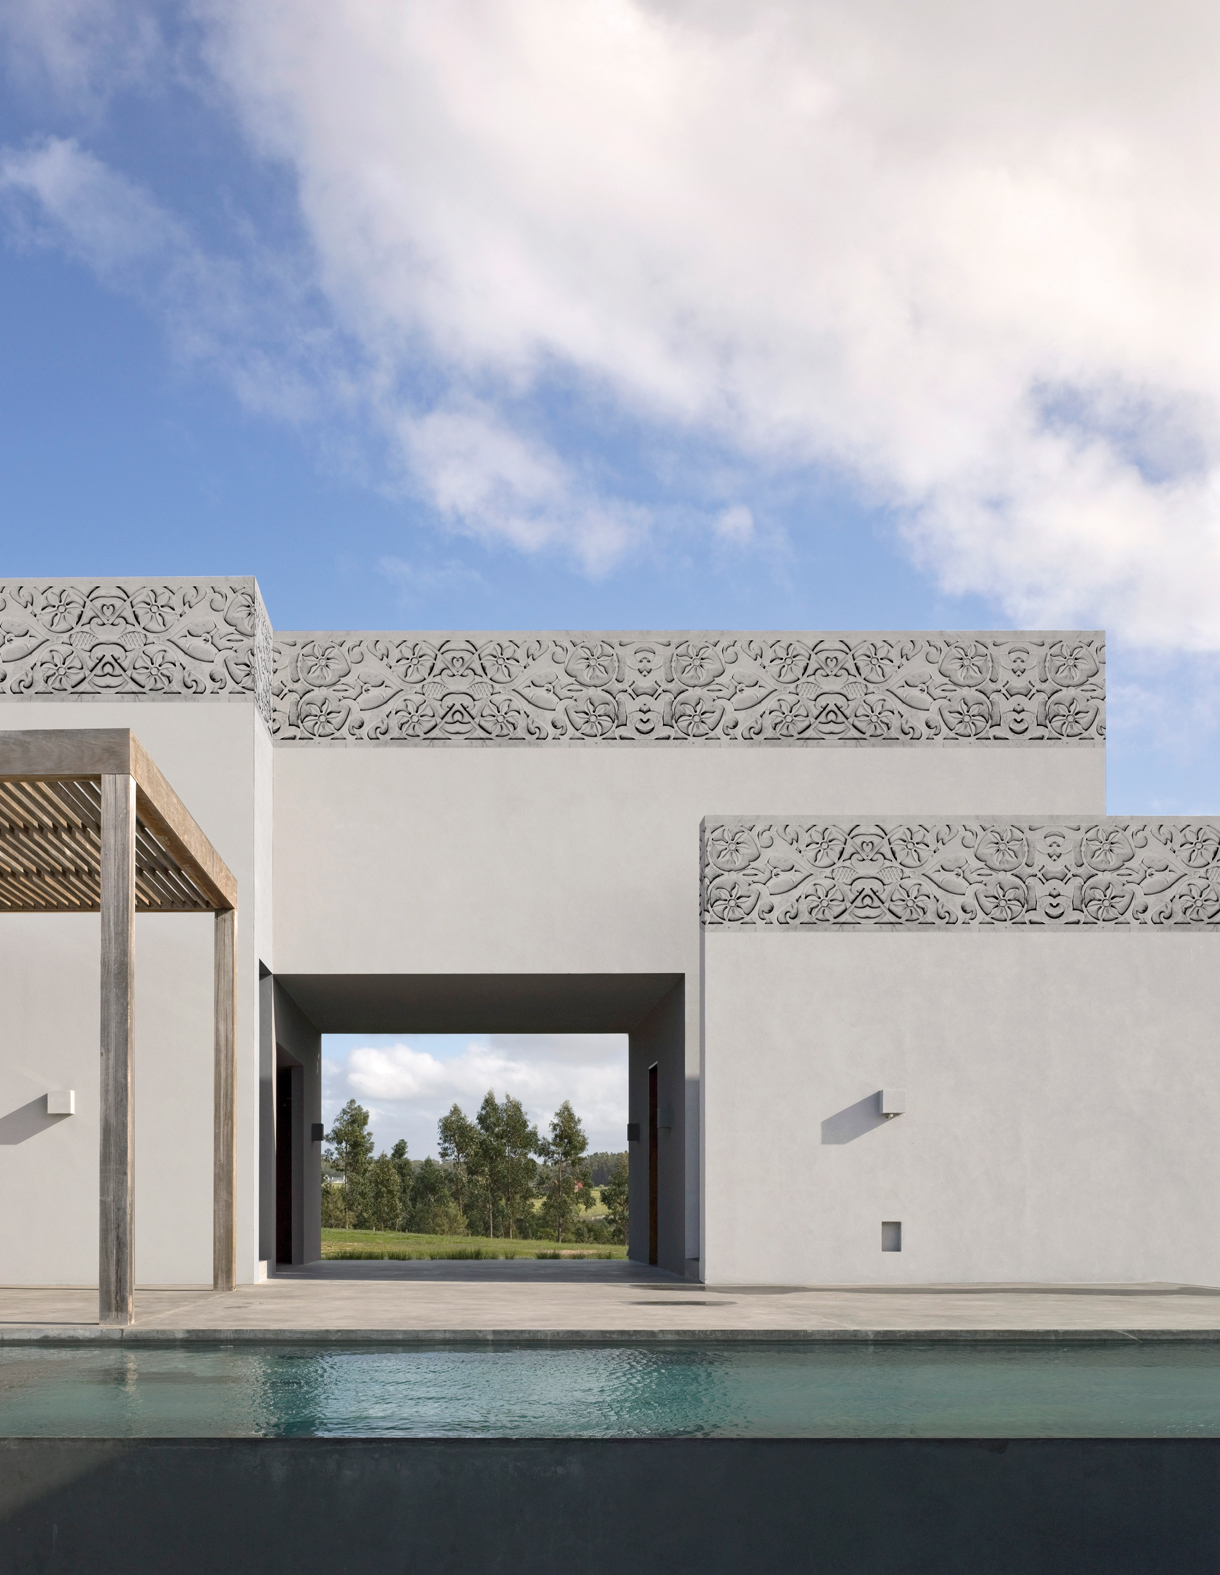 Wall And Deco Outdoor Wallpaper : Stone effect outdoor wallpaper hellenism by wall dec?